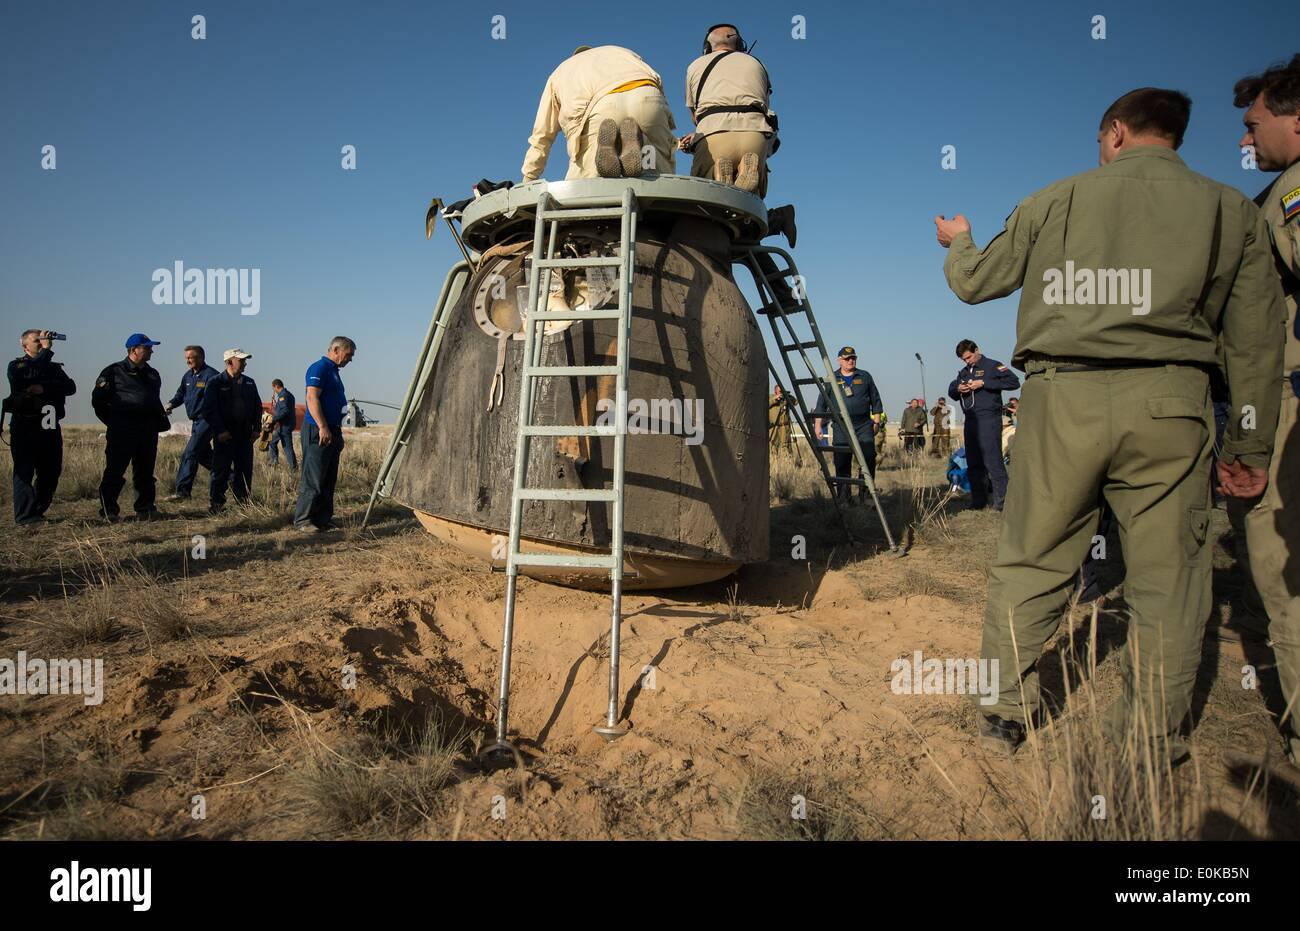 Support personnel prepare to extract the crew from the Soyuz TMA-11M spacecraft shortly after it landed carrying ISS Expedition 39 crew members May 14, 2014 near the town of Zhezkazgan, Kazakhstan. Wakata, Tyurin and Mastracchio returned to Earth after more than six months onboard the International Space Station where they served as members of the Expedition 38 and 39 crews. - Stock Image